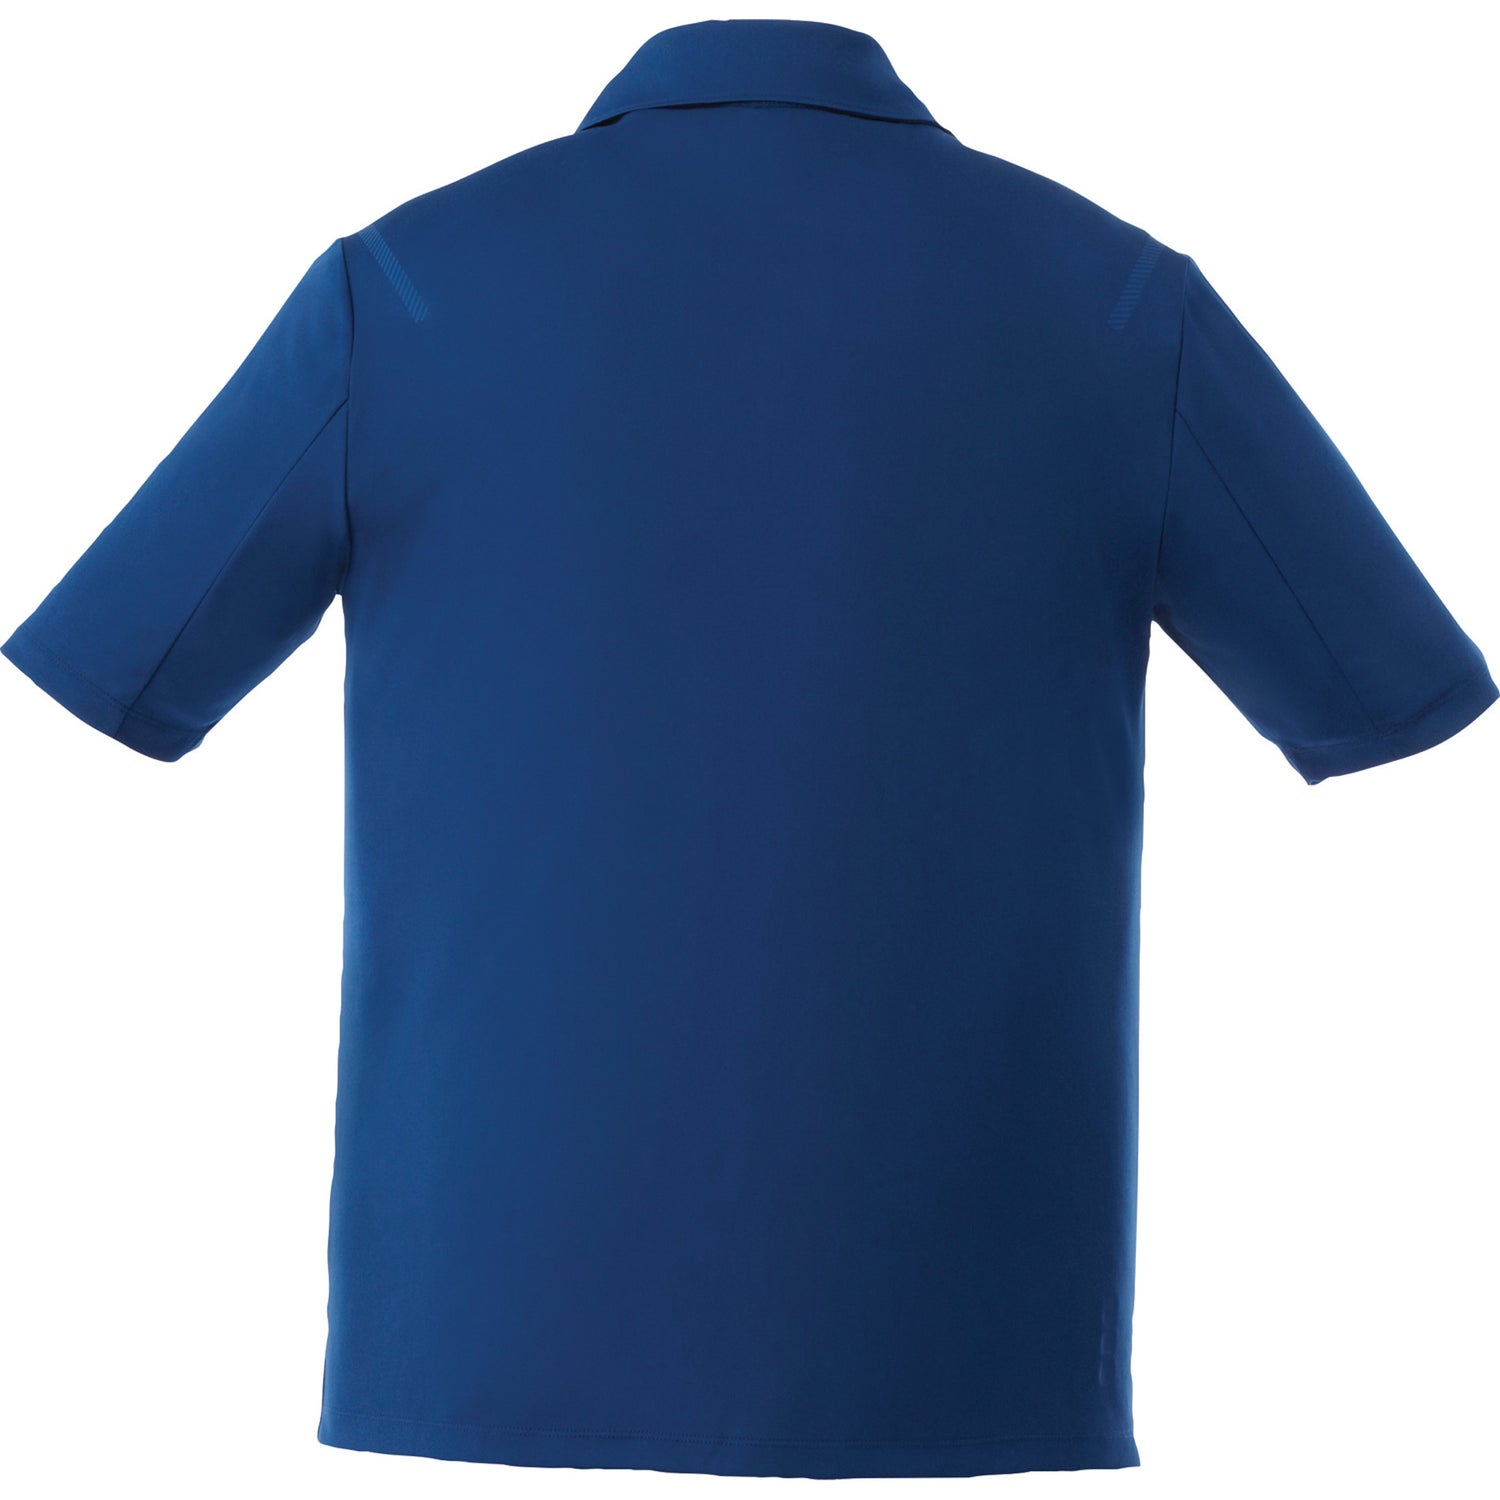 Next short sleeve polo shirt by trimark men 39 s for Quality polo shirts with company logo